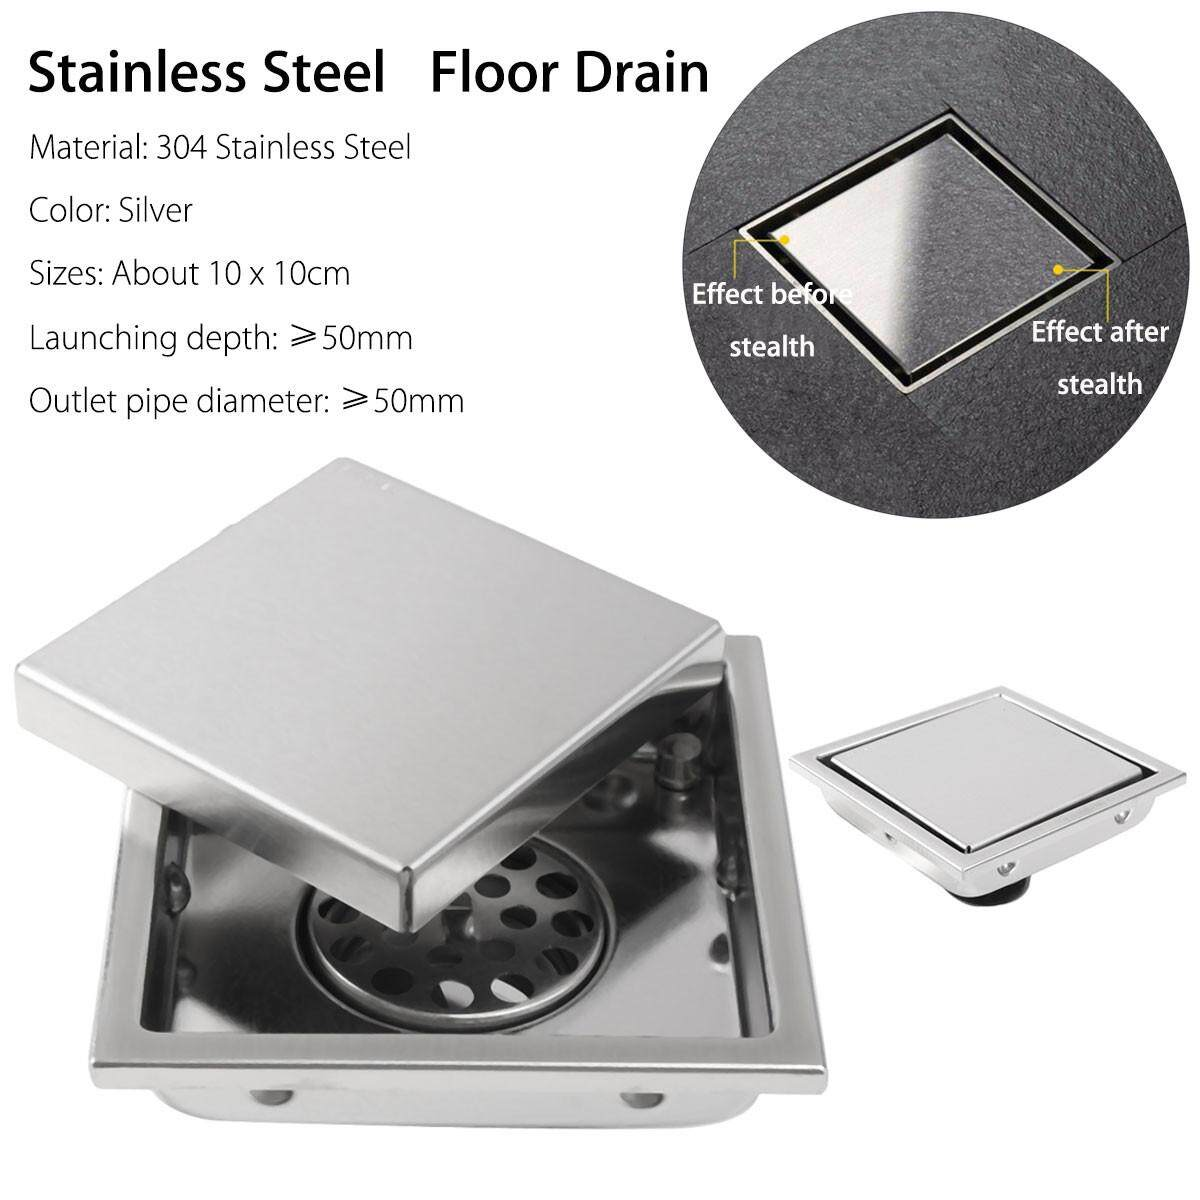 304 Stainless Steel Invisible Bathroom Floor Drain Waste Grate Shower Drainer By Autoleader.